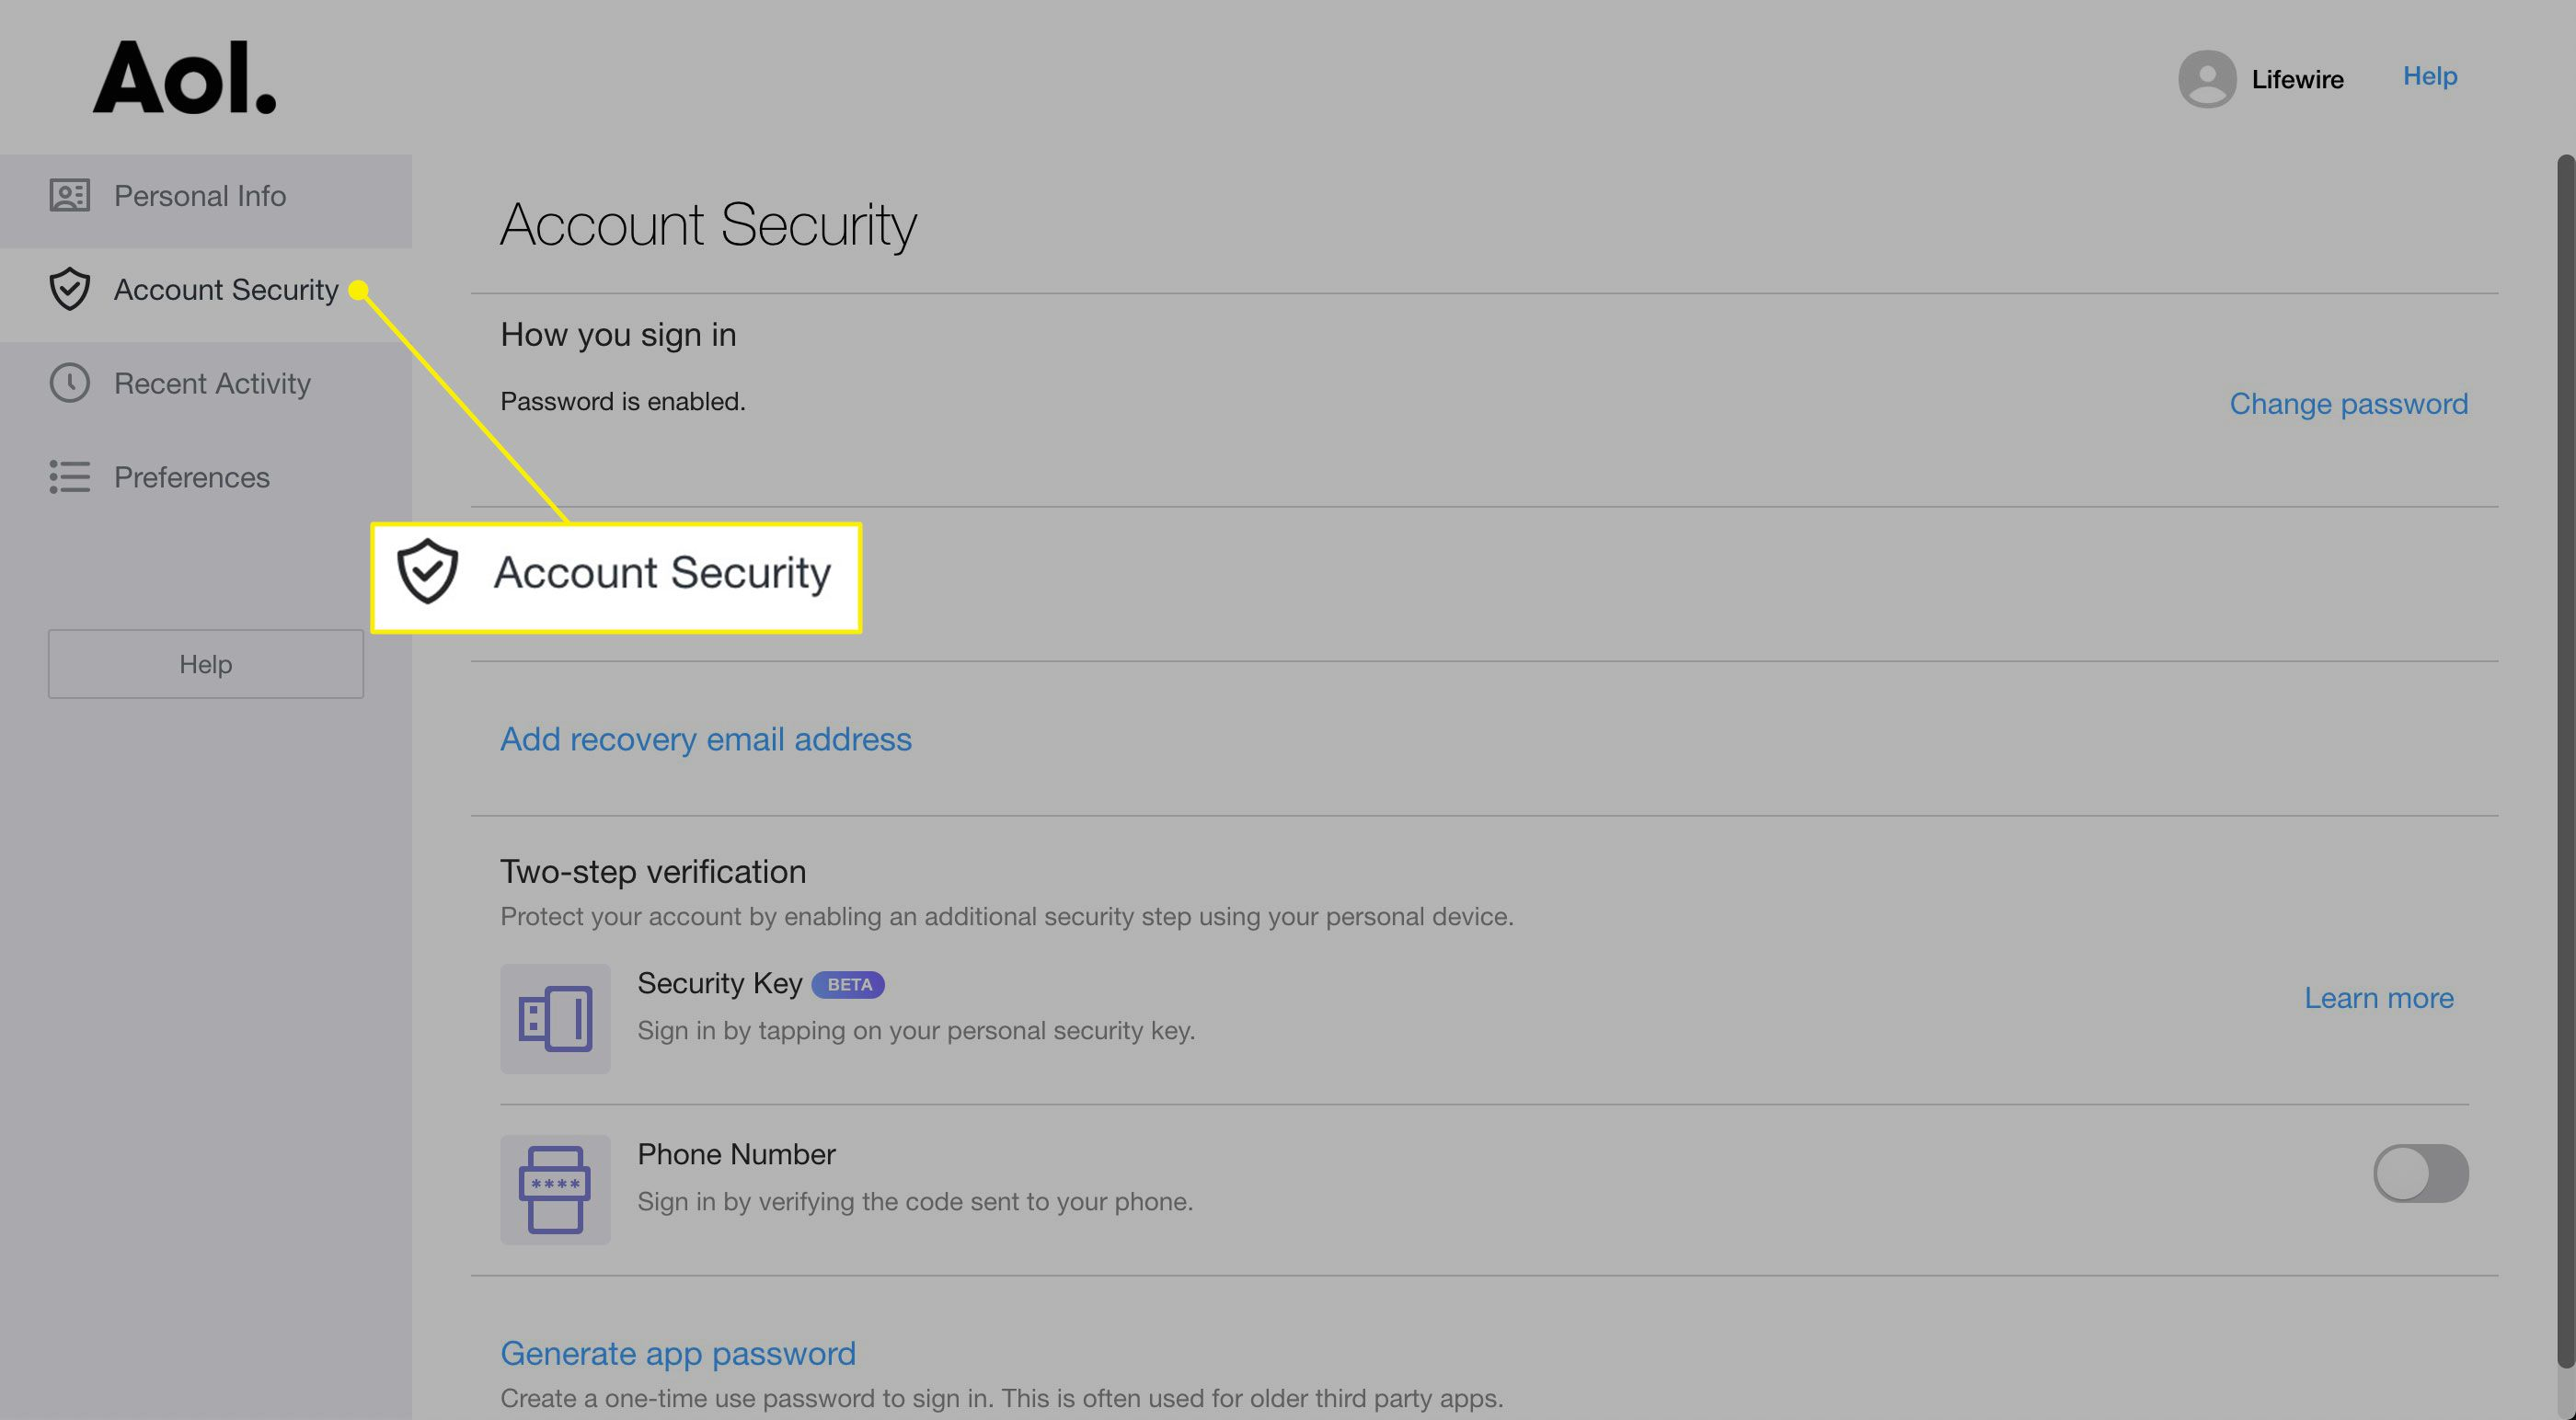 Account Security heading in AOL settings